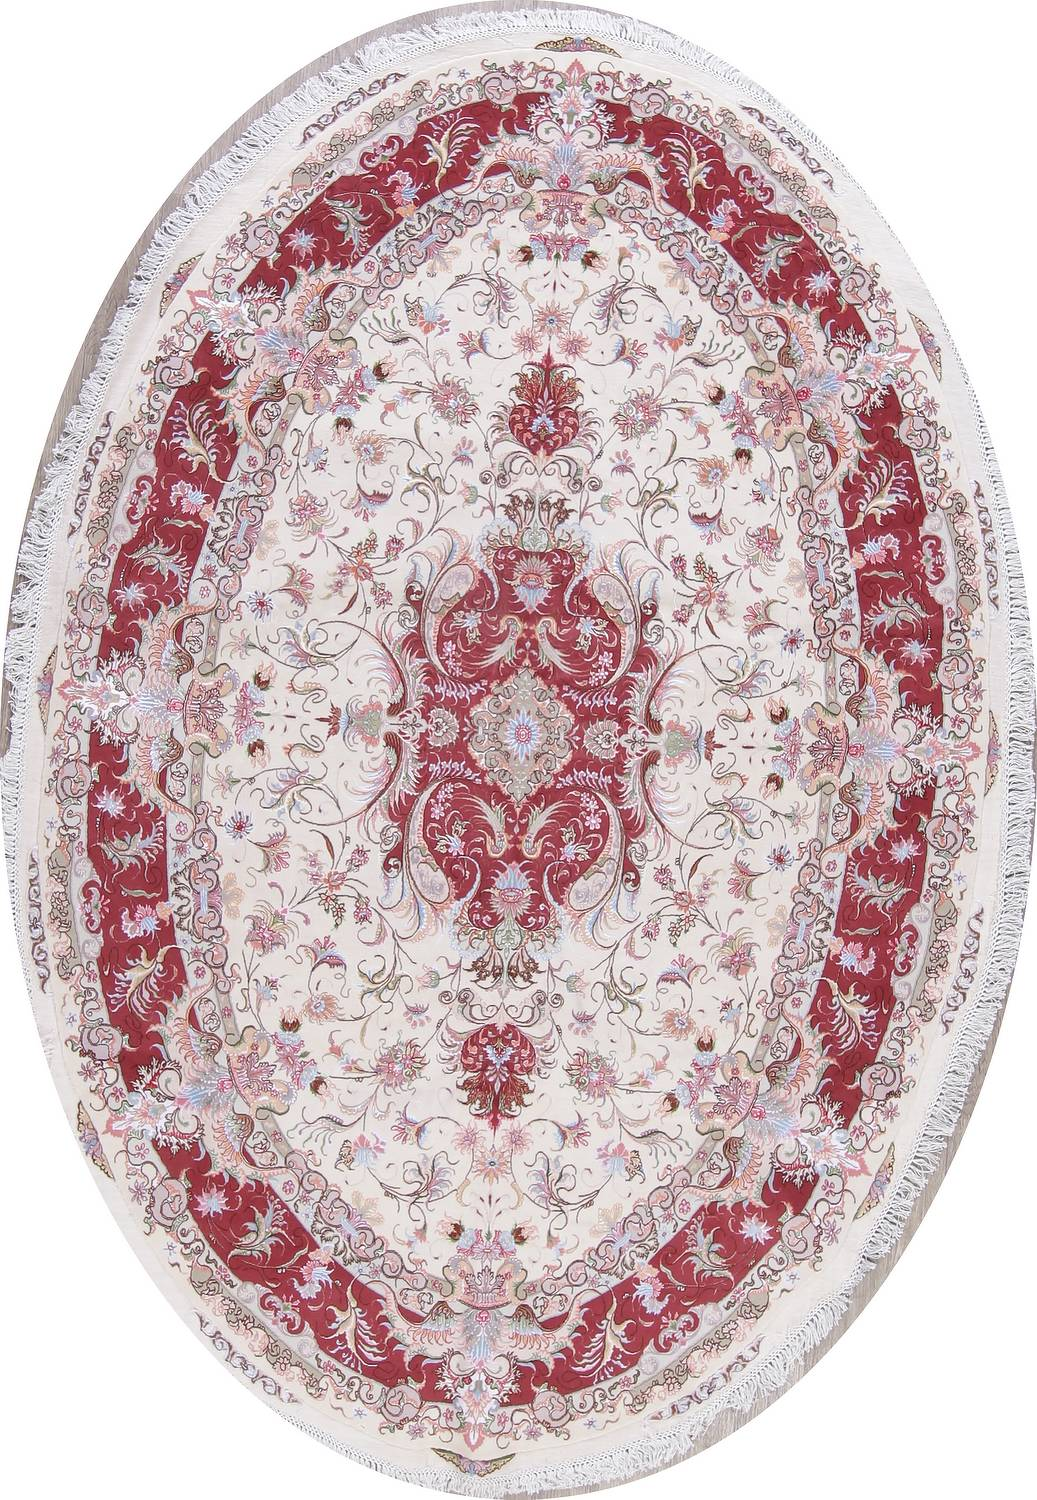 Vegetable Dye Floral Ivory Tabriz Persian Hand-Knotted Area Rug 7x10 image 1